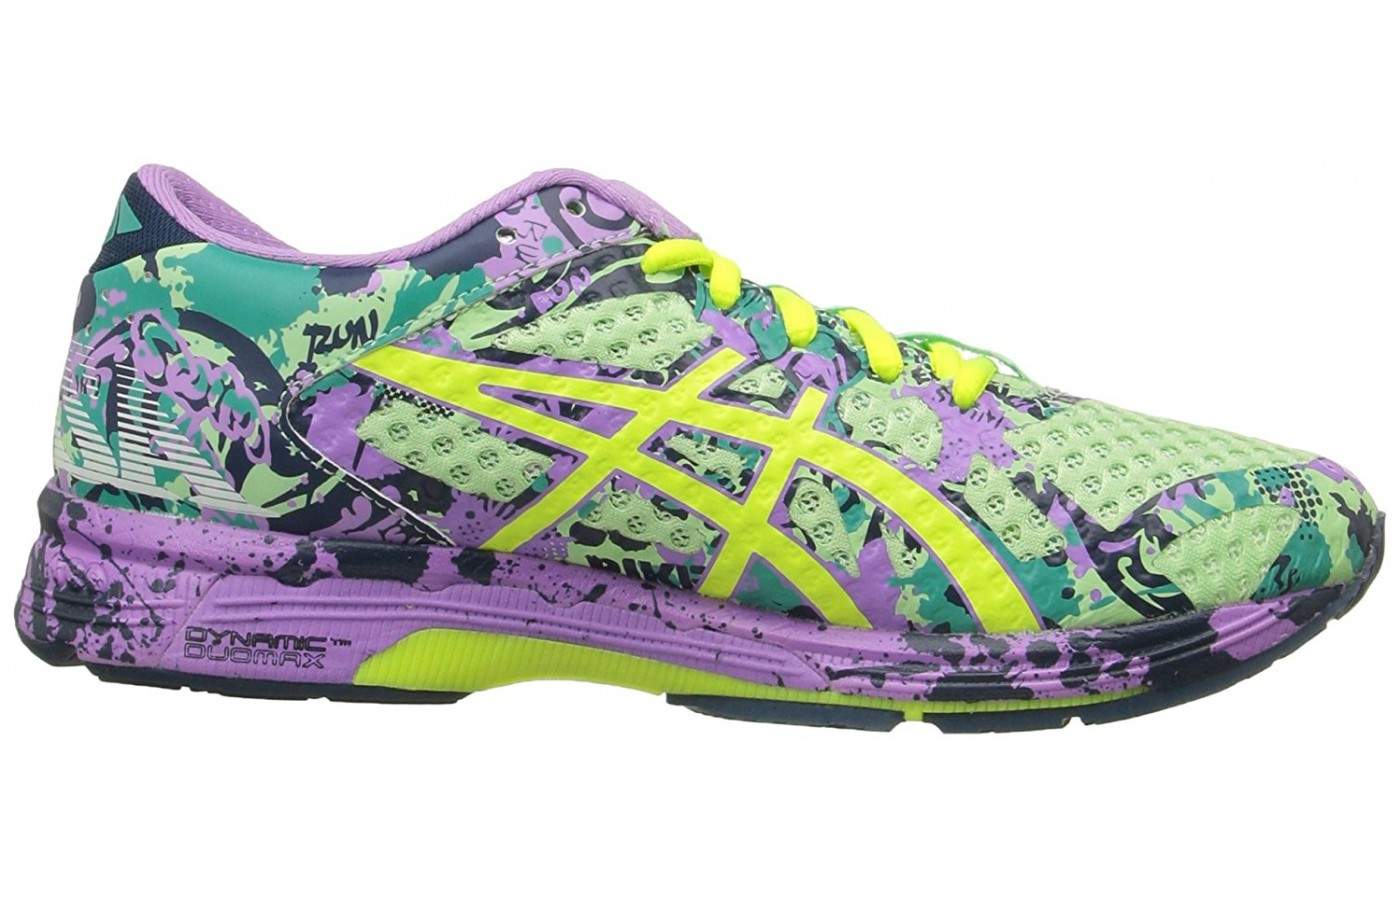 Asics Gel Noosa Tri 11 side